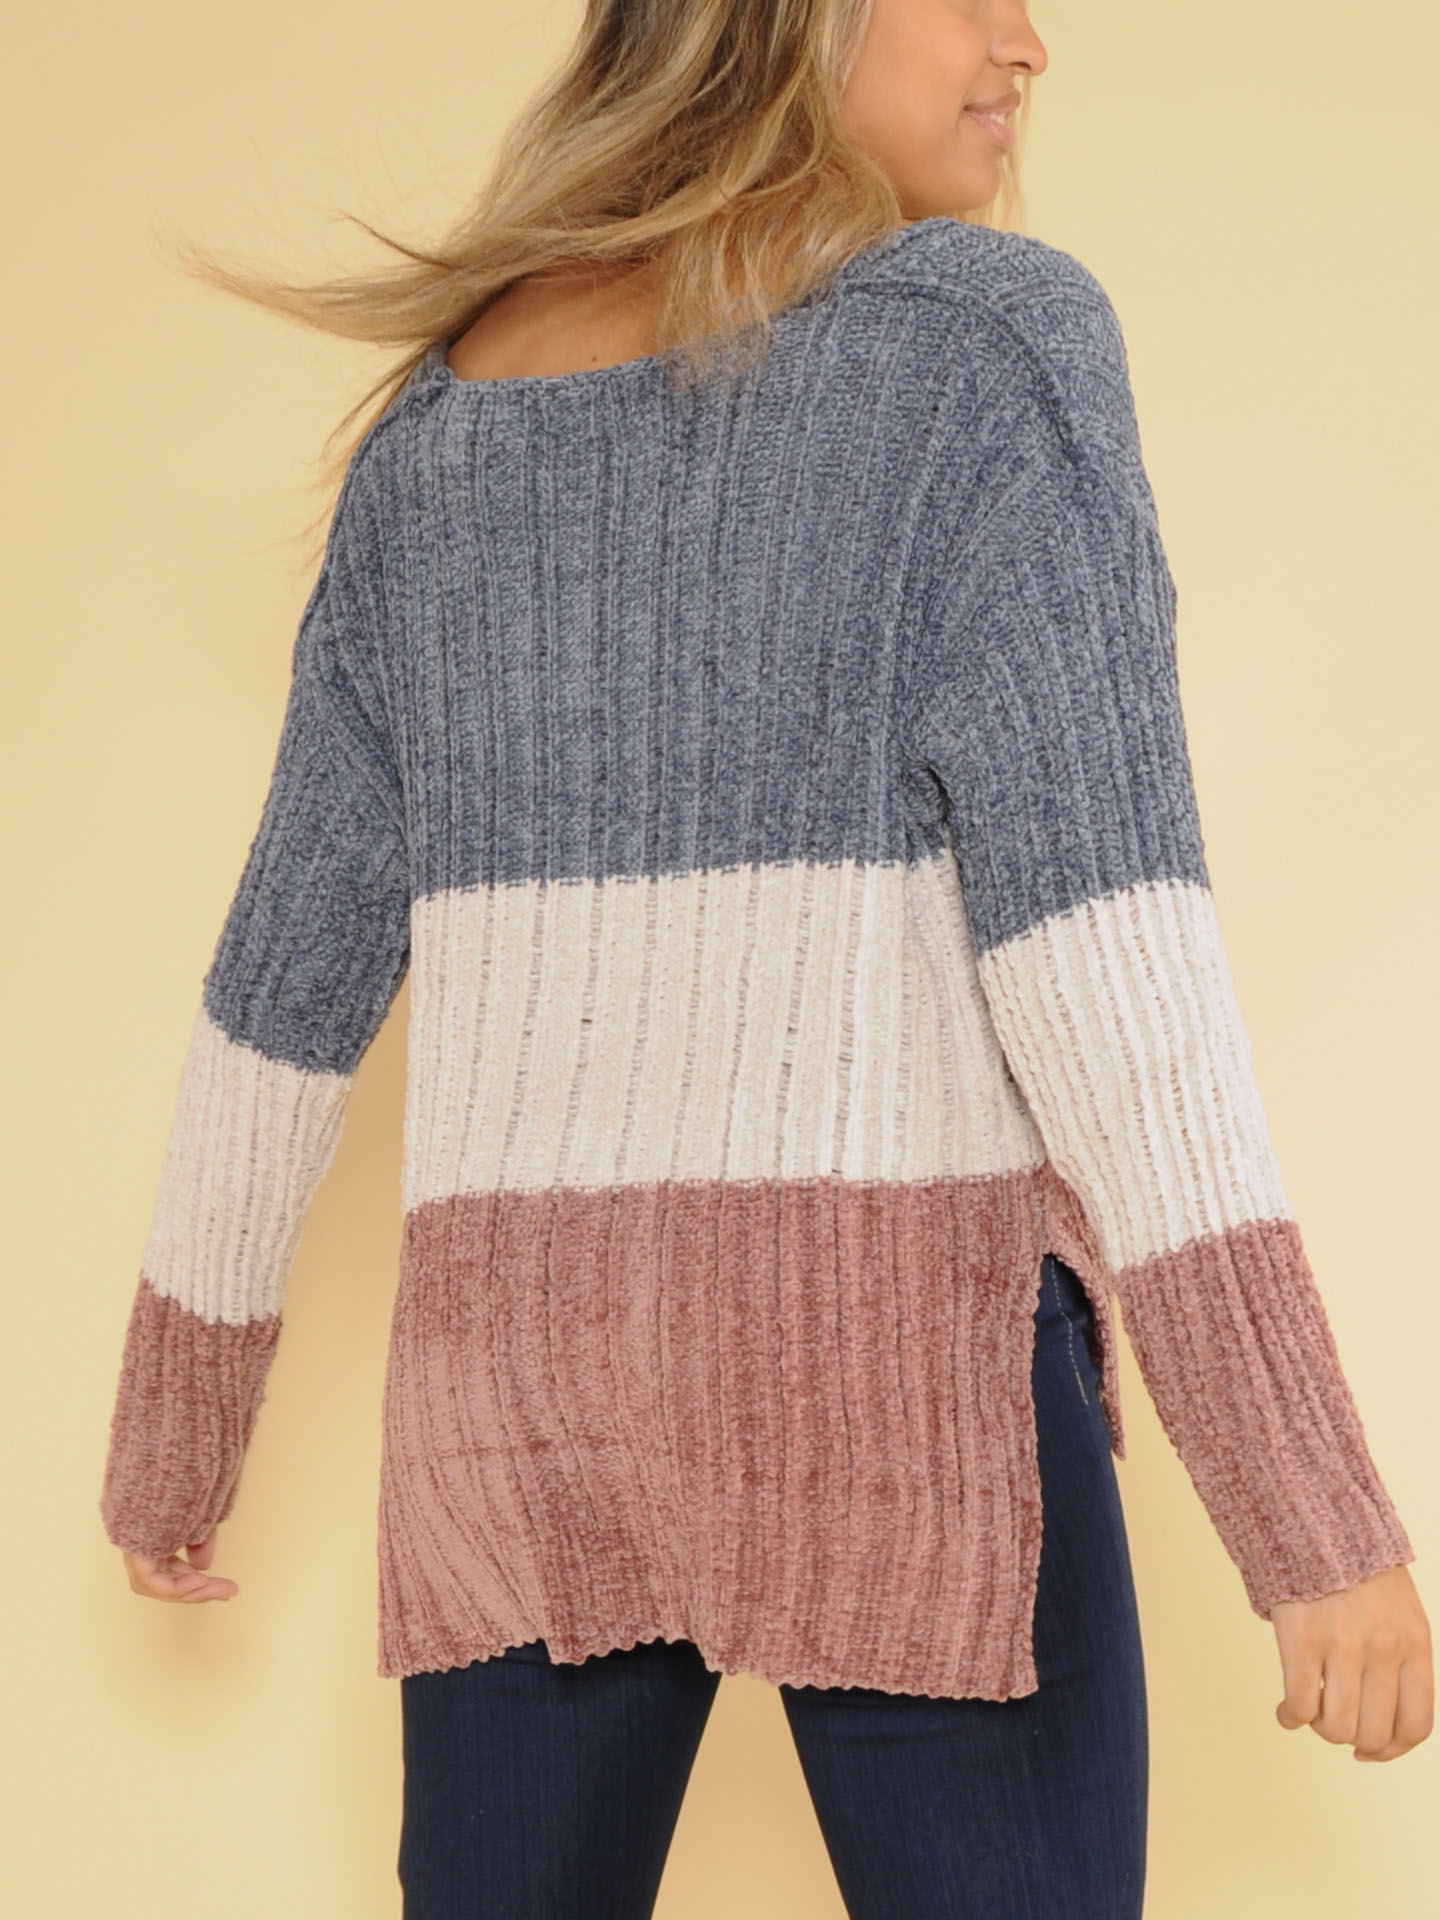 Ryleigh Knit Sweater Soft Striped Crew Neck  Back